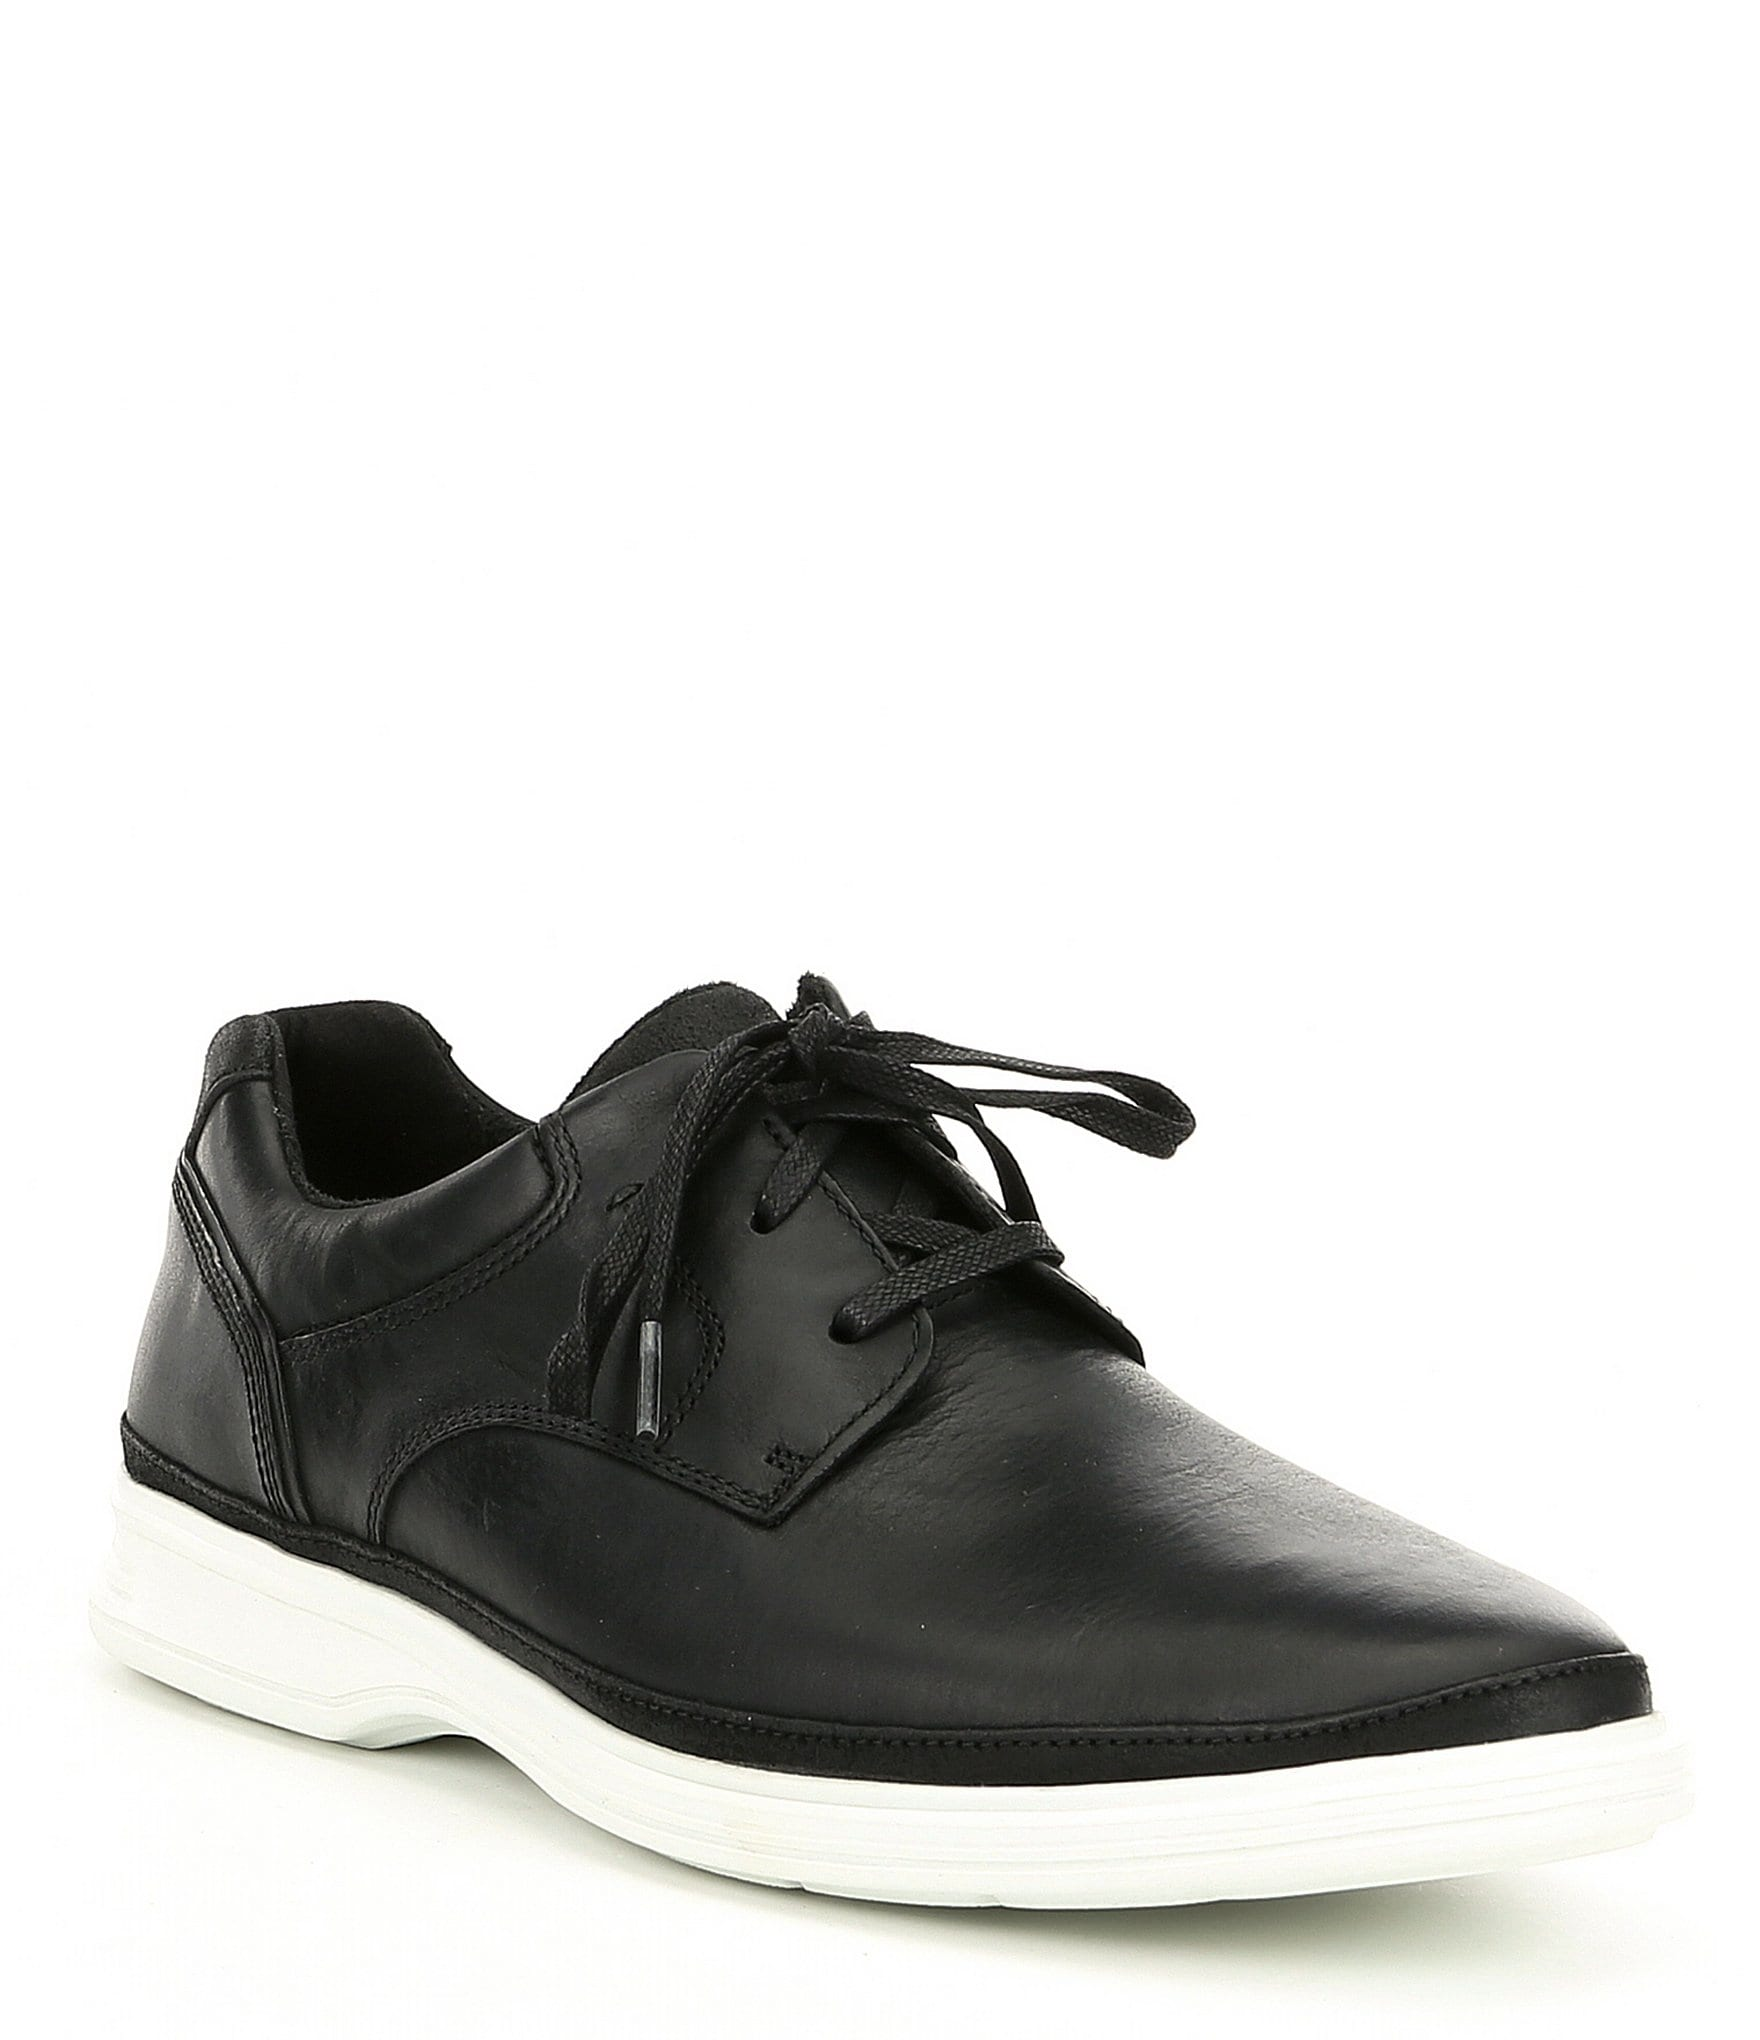 Rockport Men\u0027s Dressports 2 Go Leather Sneakers